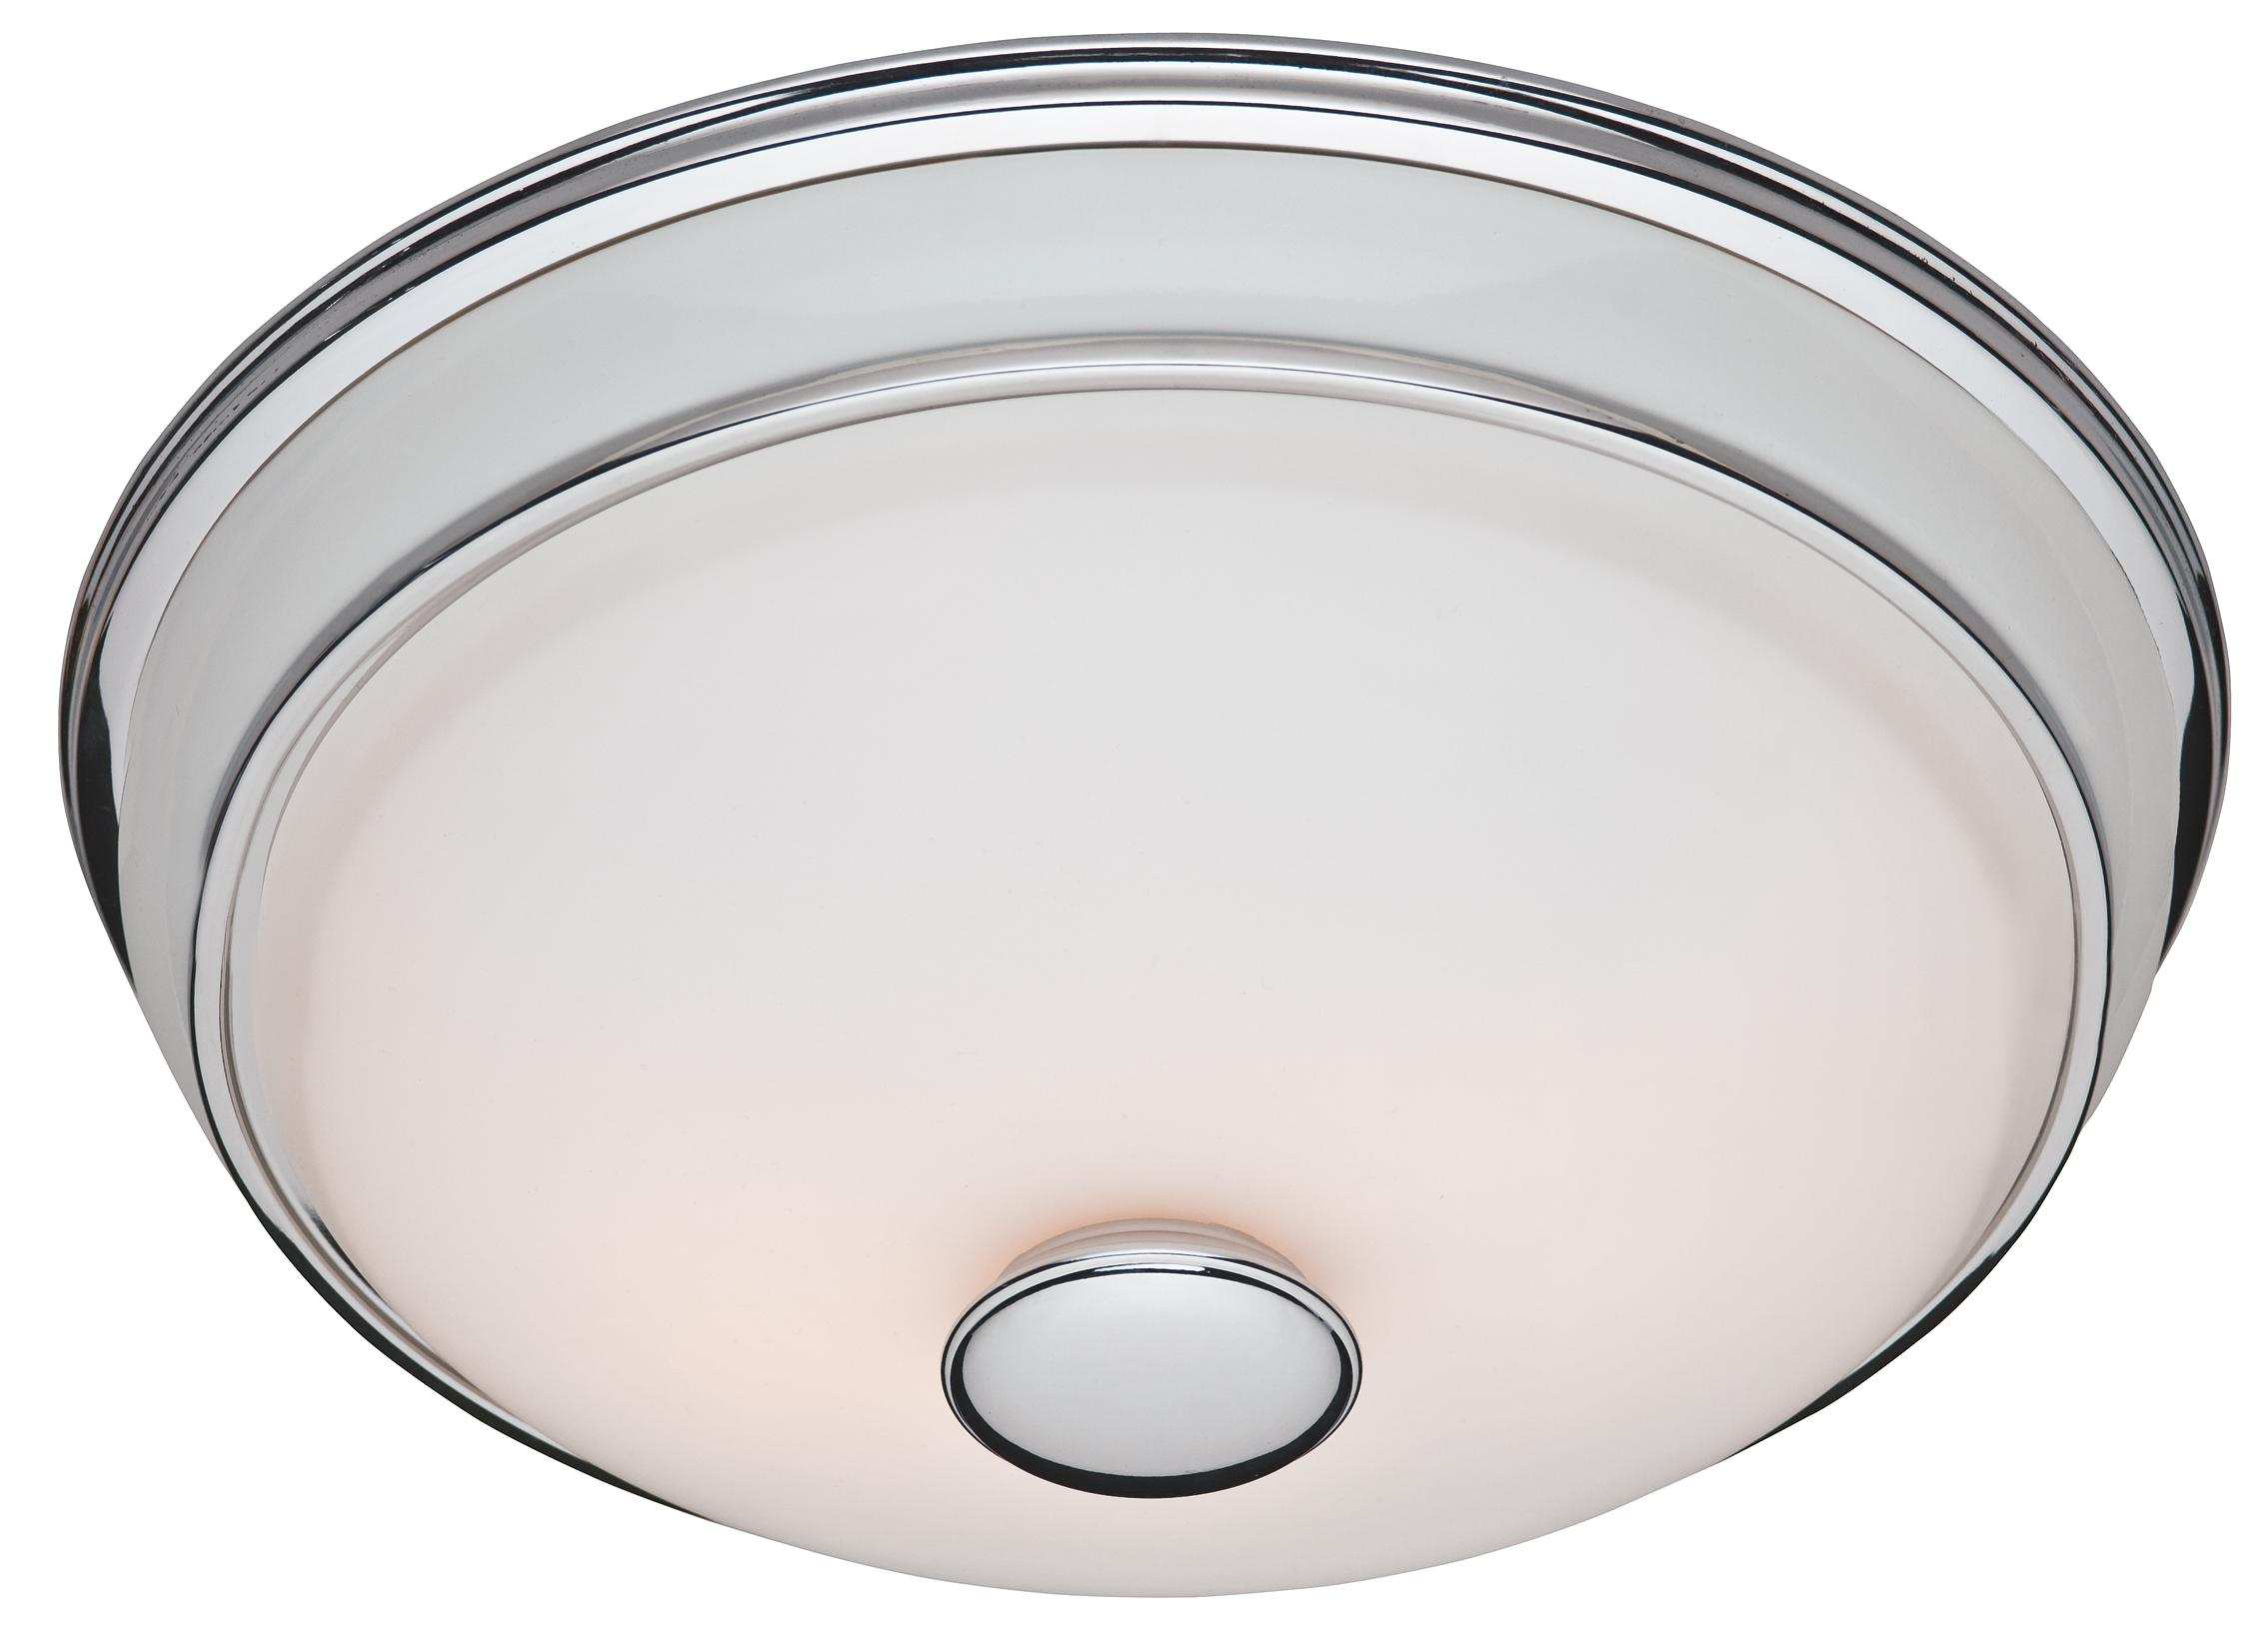 Bathroom Light Vent Hunter 81021 Ventilation Victorian Bathroom Exhaust Fan And Light